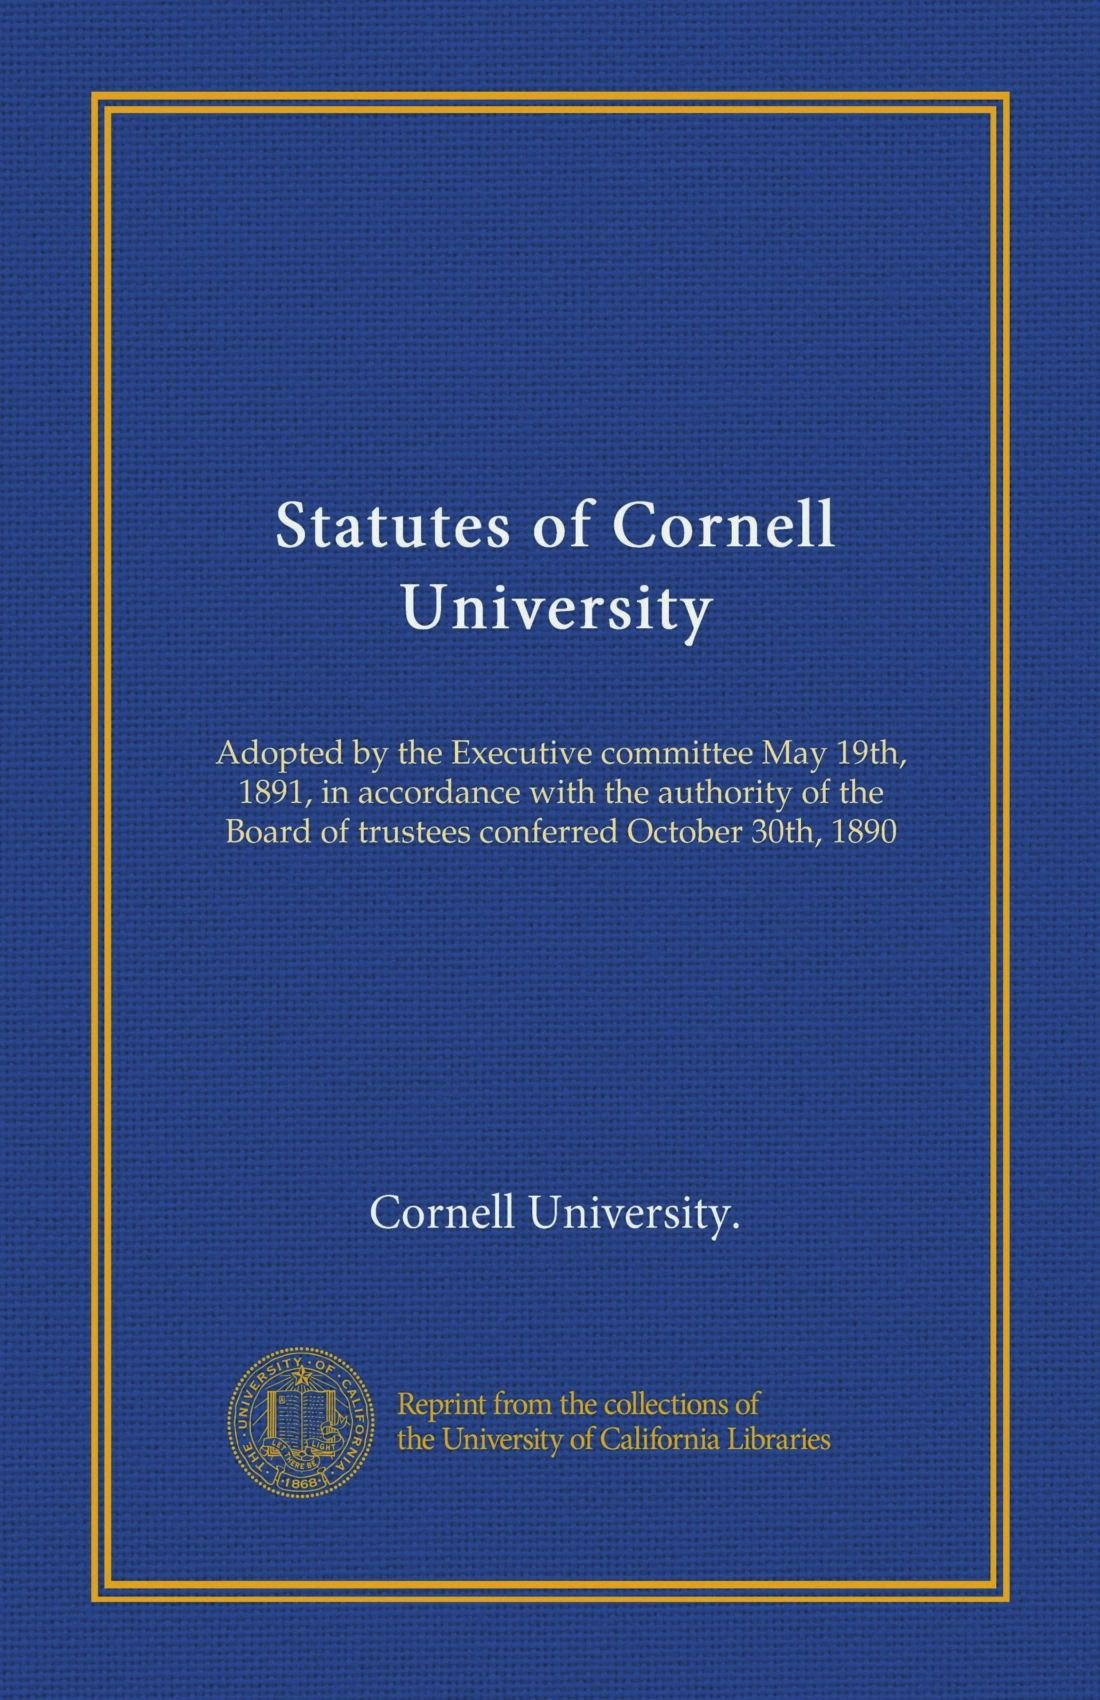 Statutes of Cornell University: Adopted by the Executive committee May 19th, 1891, in accordance with the authority of the Board of trustees conferred October 30th, 1890 pdf epub